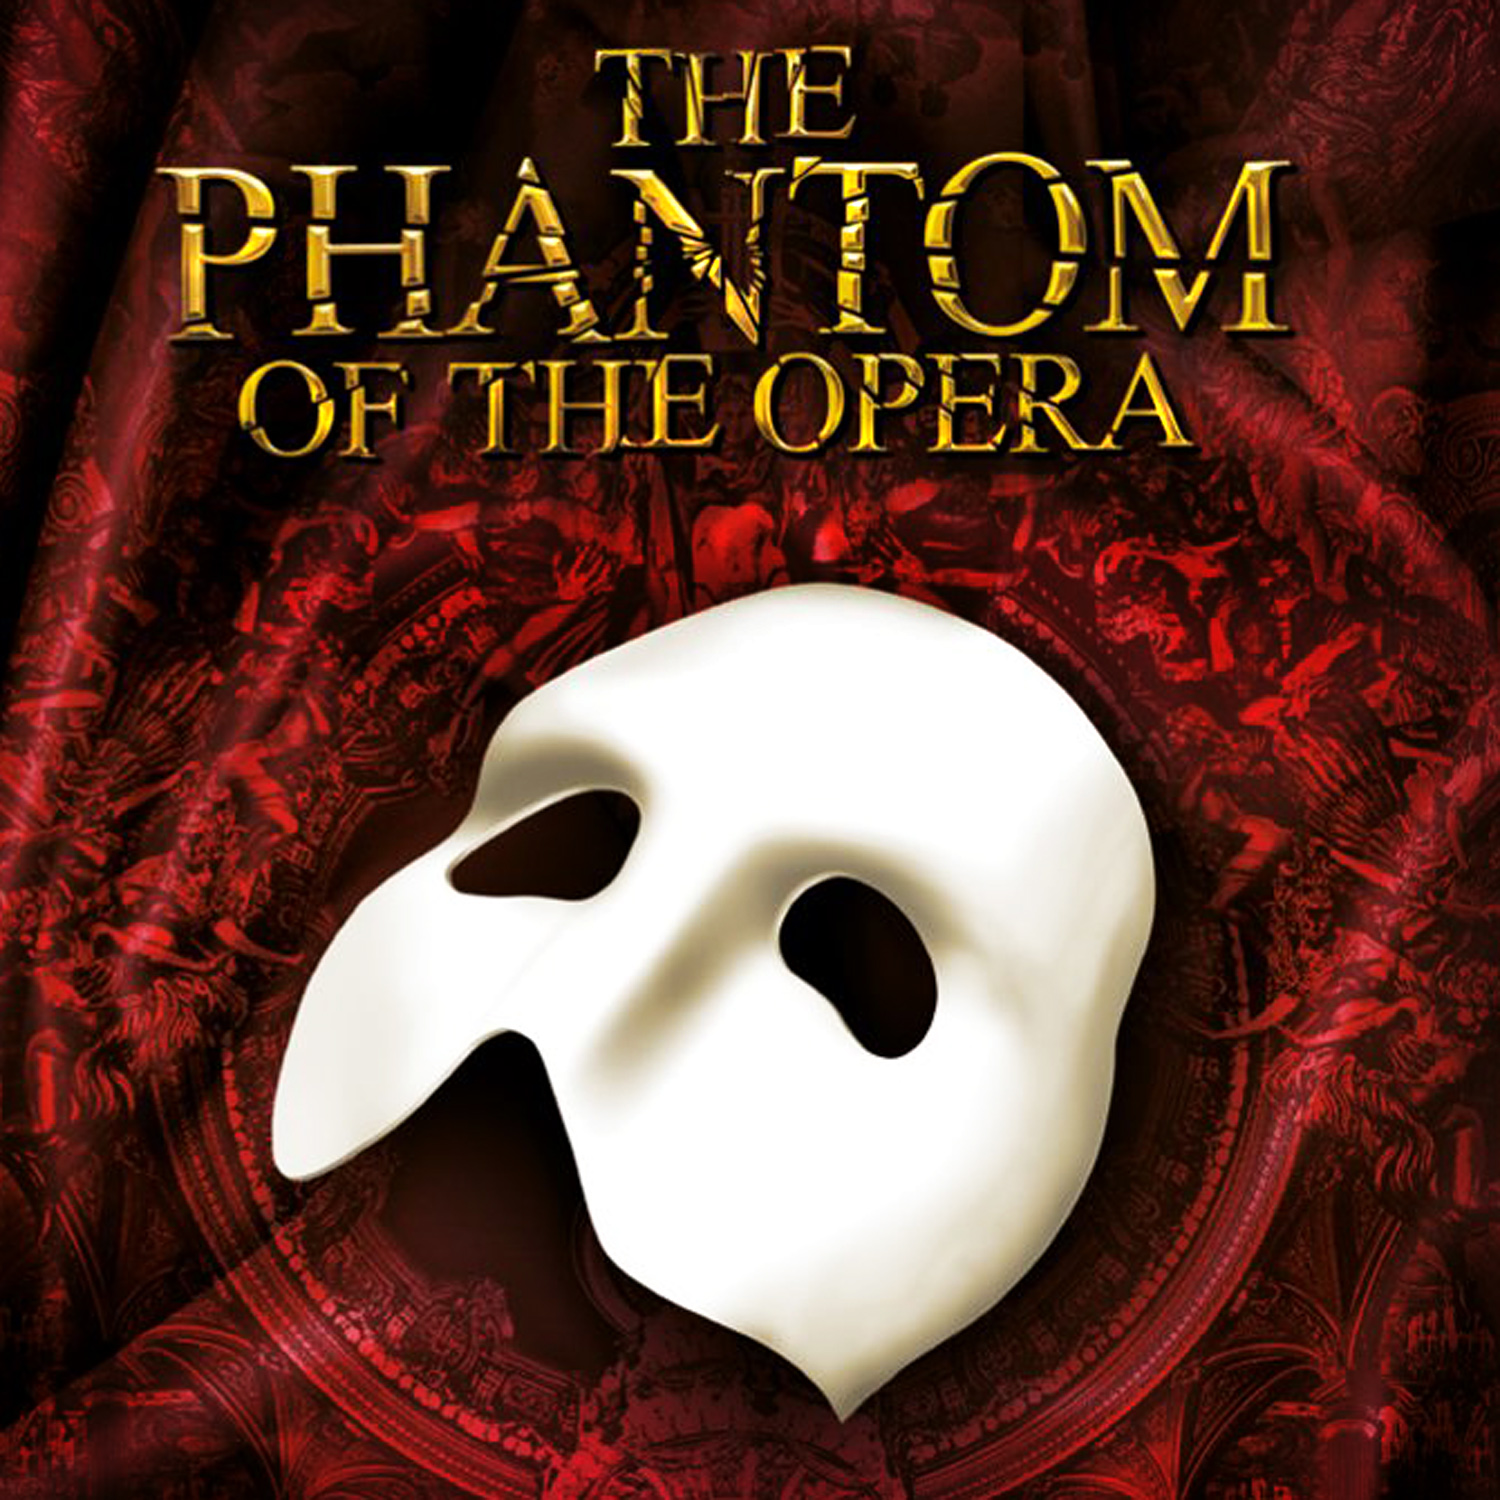 book review on the phantom of the opera